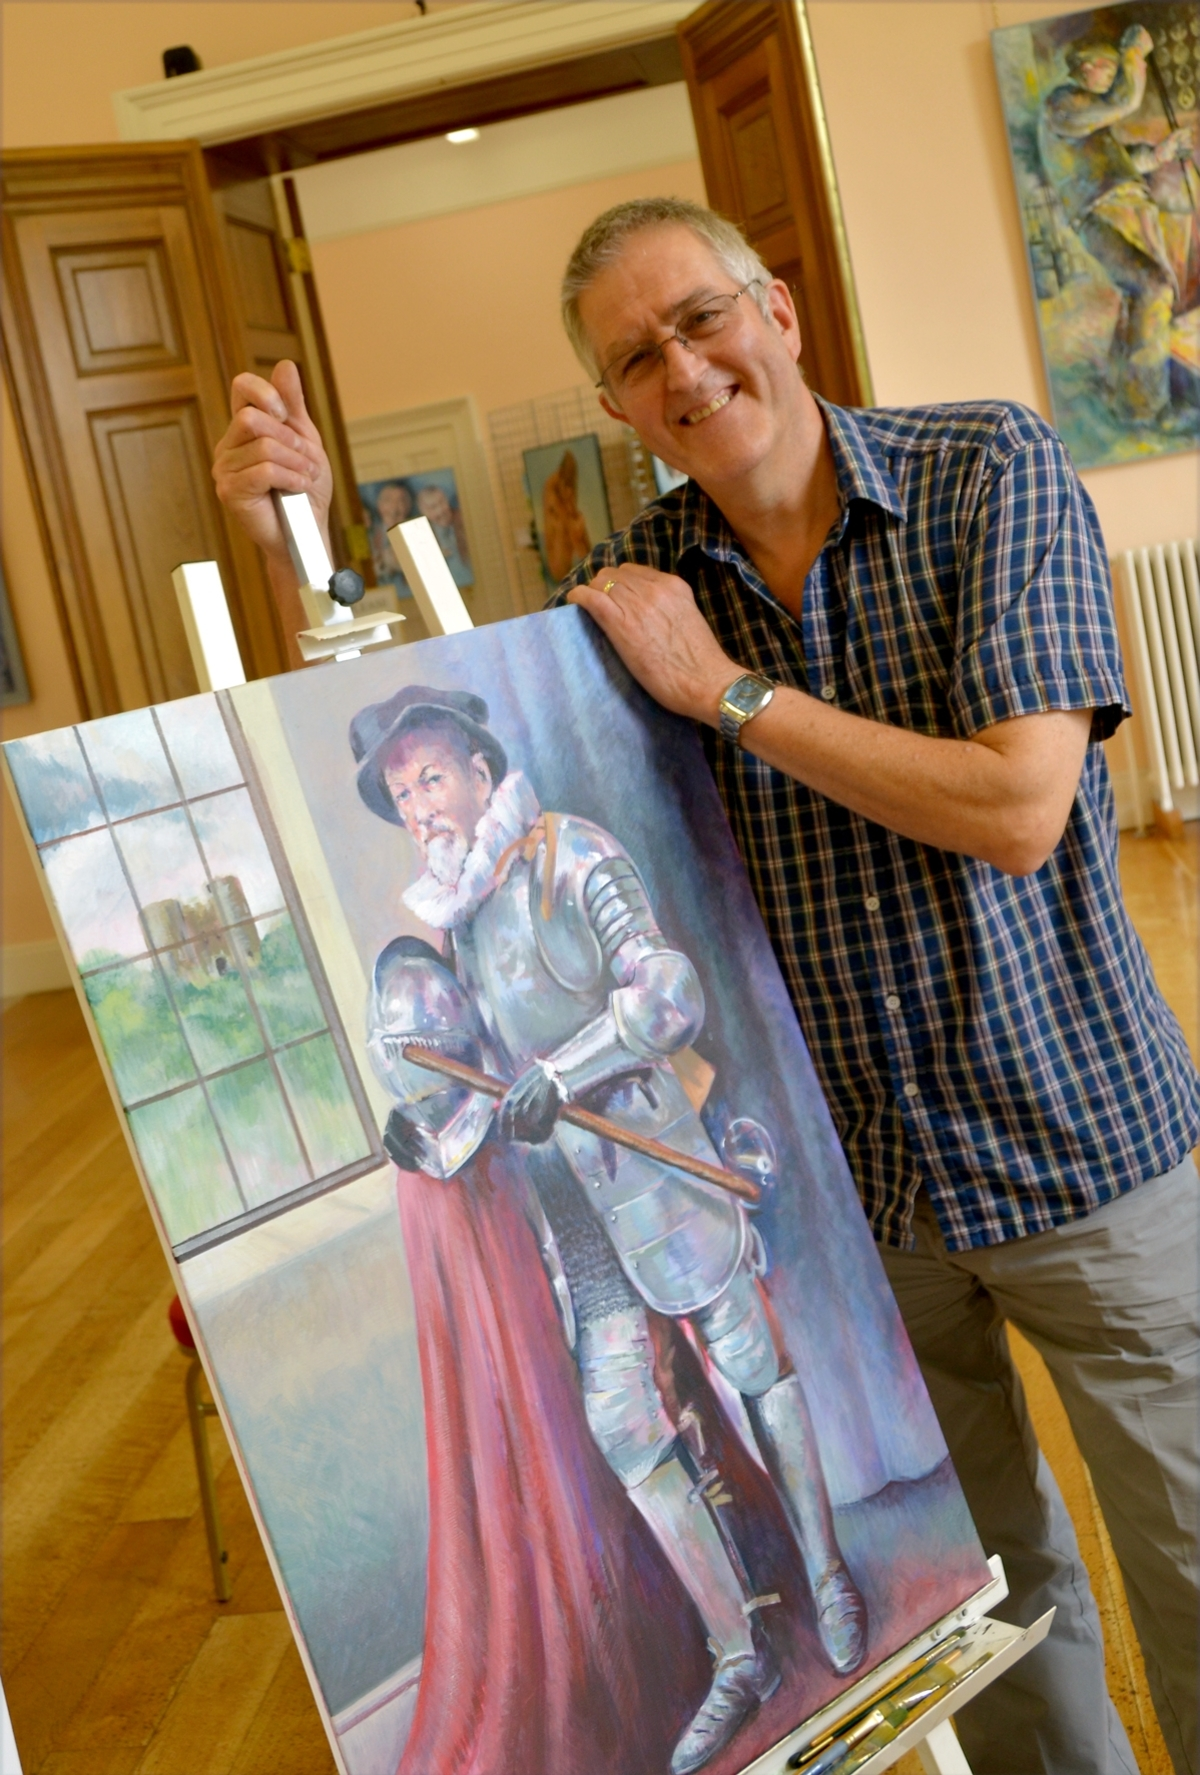 On show: Birmingham-born artist Keith Turley will be speaking at Kidderminster Art Society. Photo: Colin Hill.